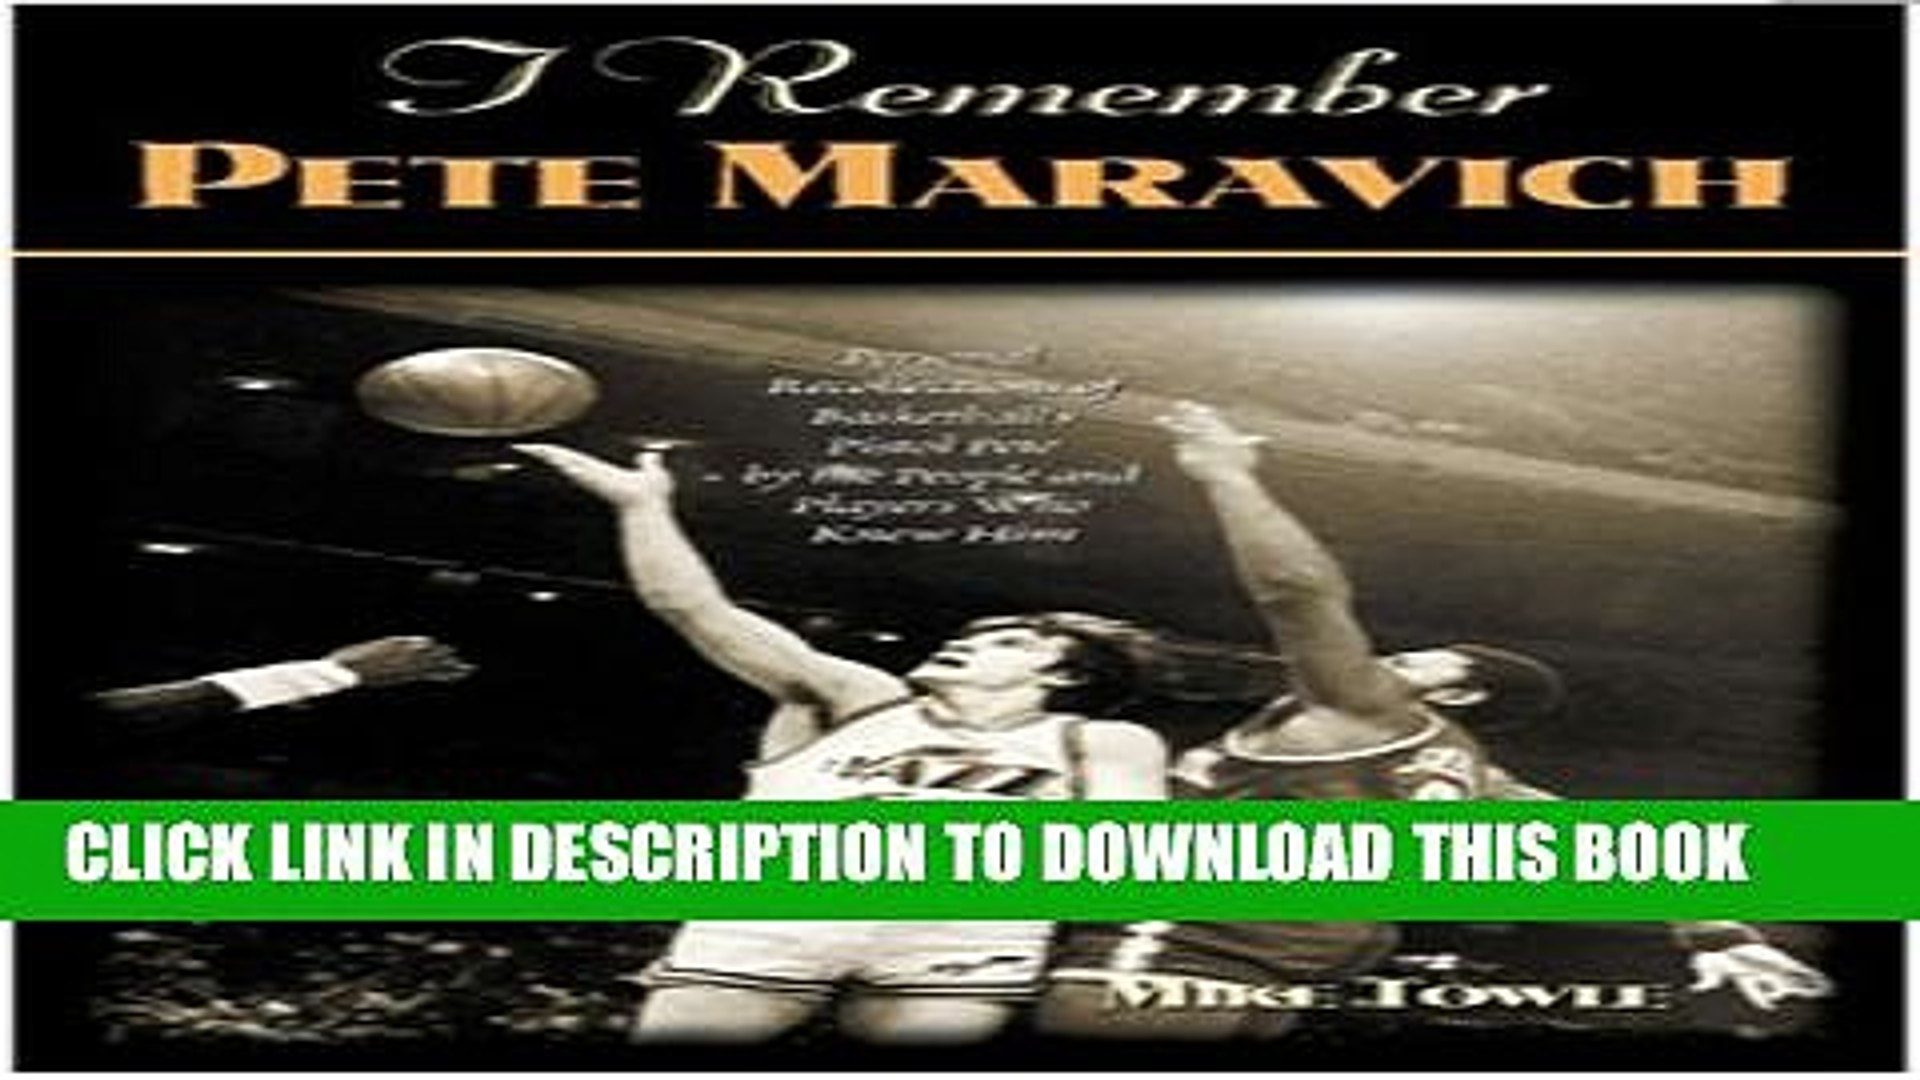 [PDF] I Remember Pete Maravich: Personal Recollections of Basketball s Pistol Pete by the People